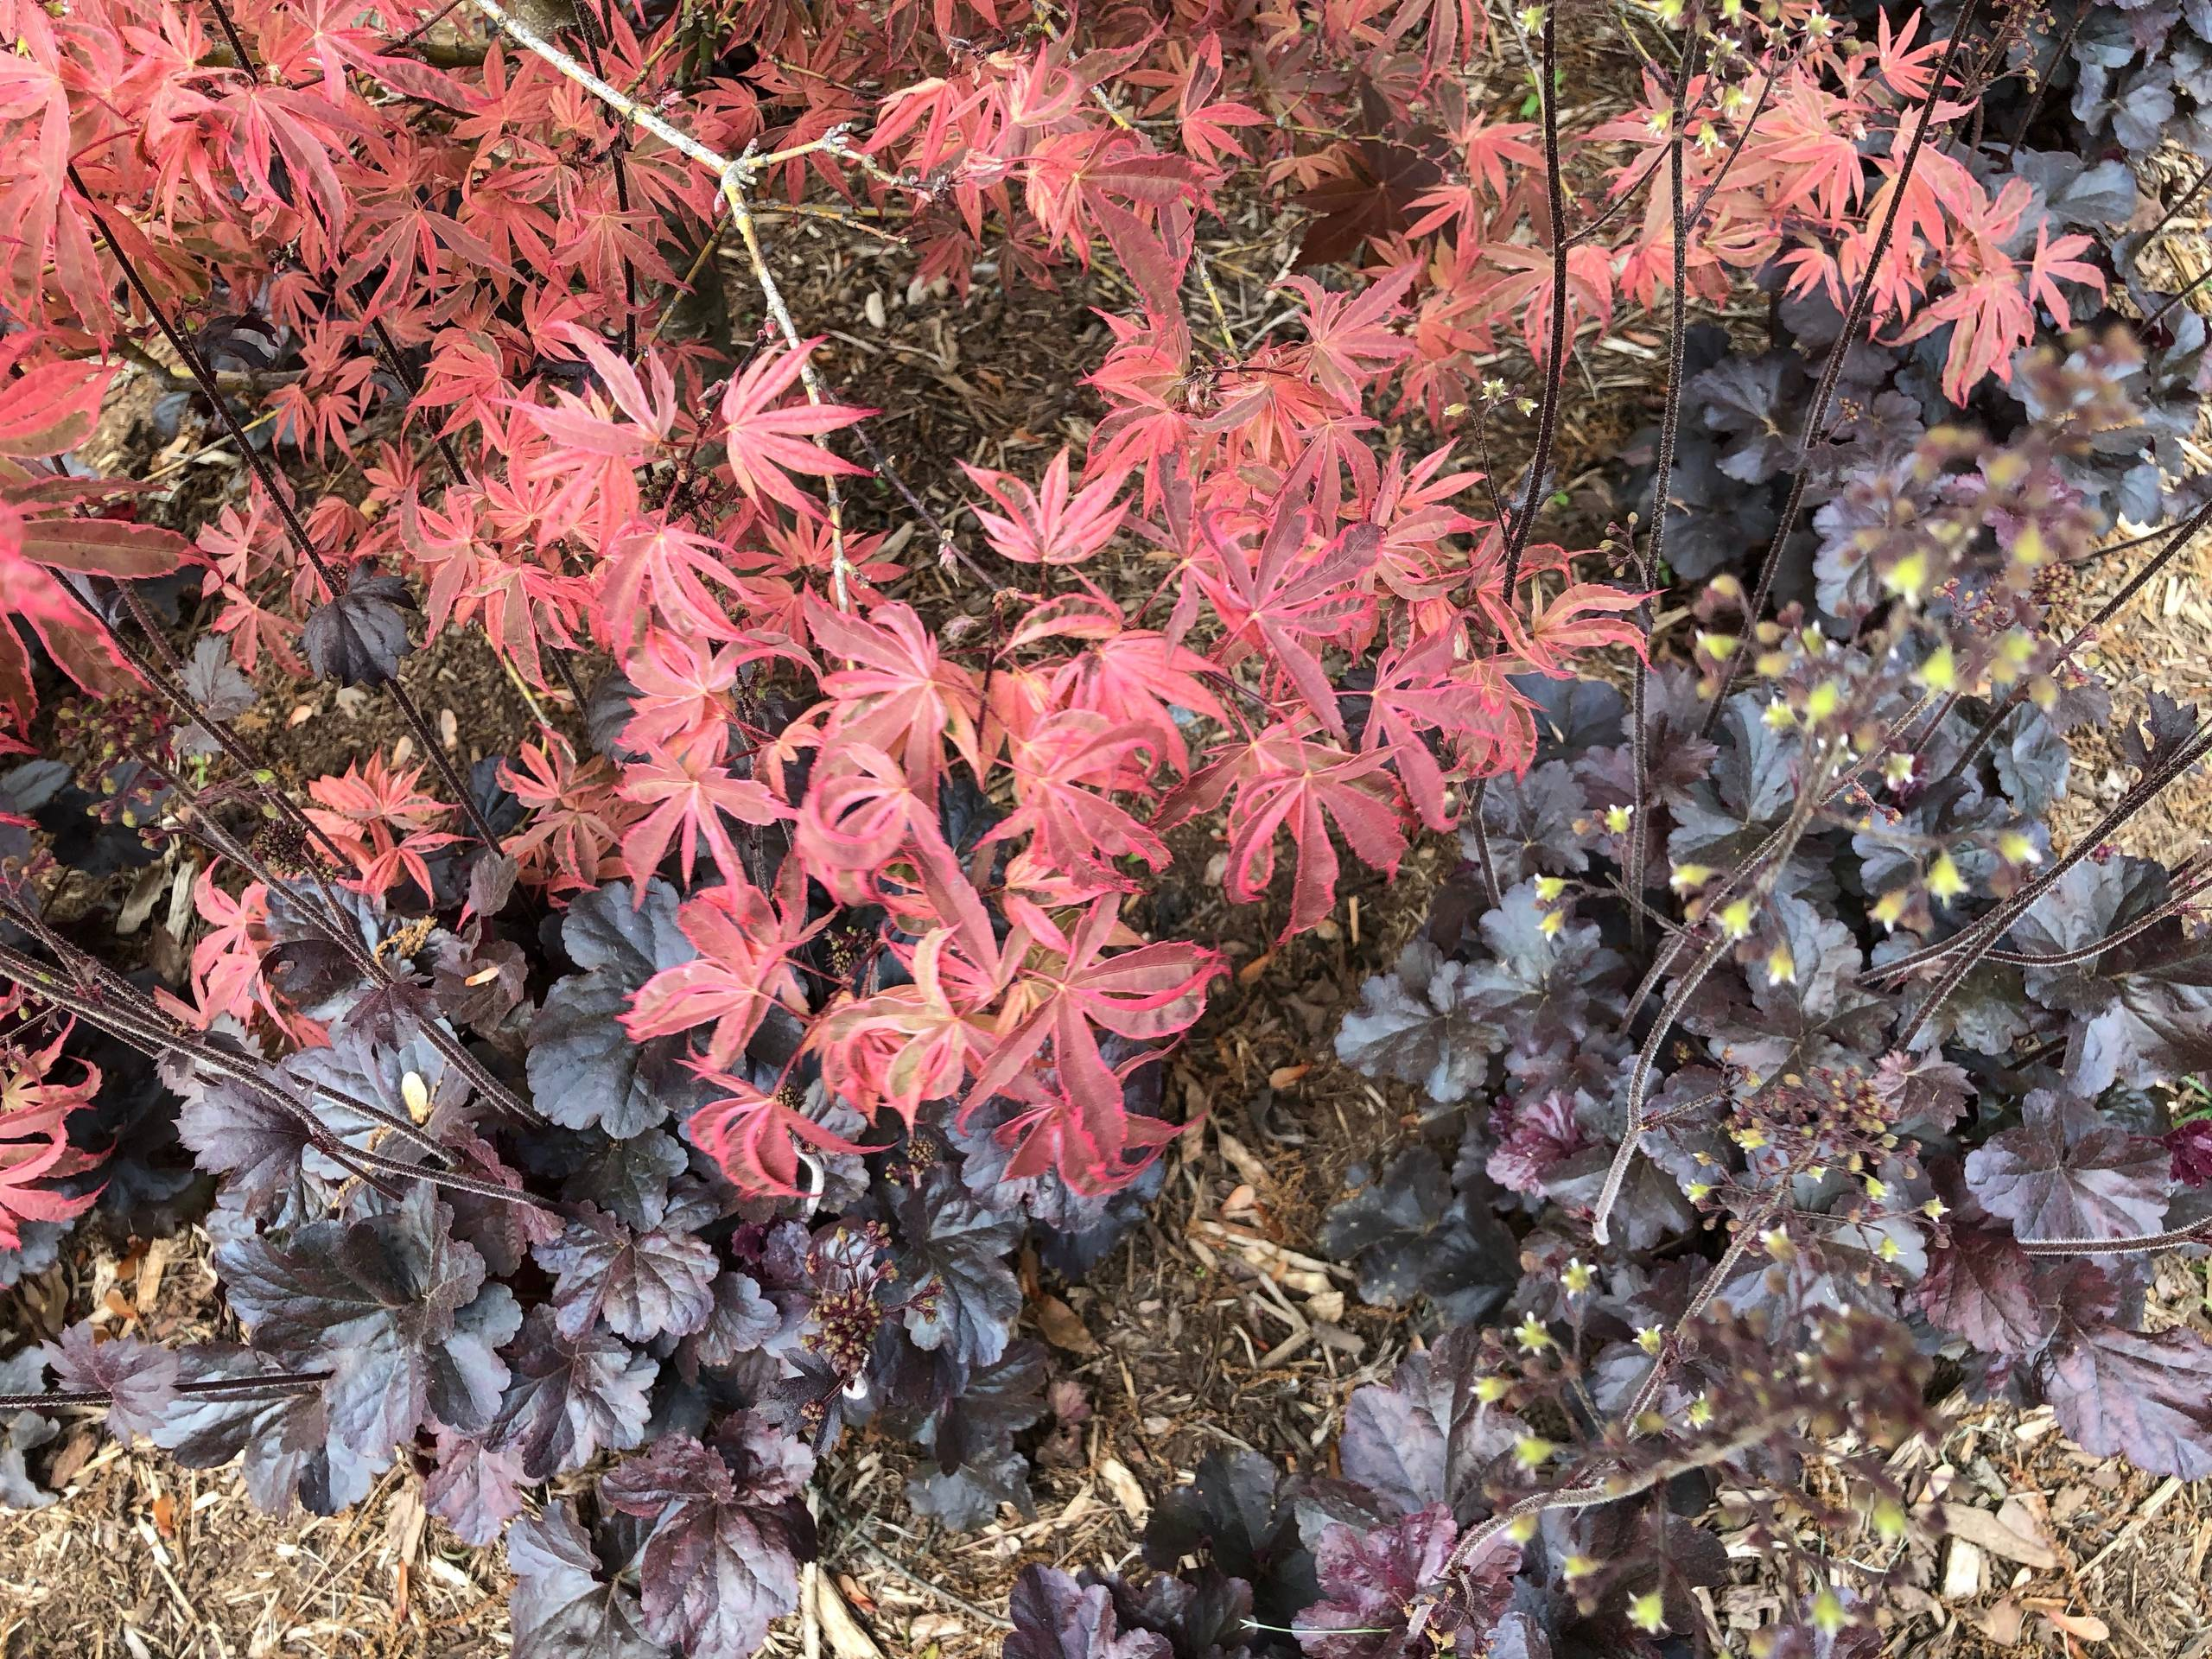 'Shirazz' Japanese maple with 'Obsidian' heuchera.